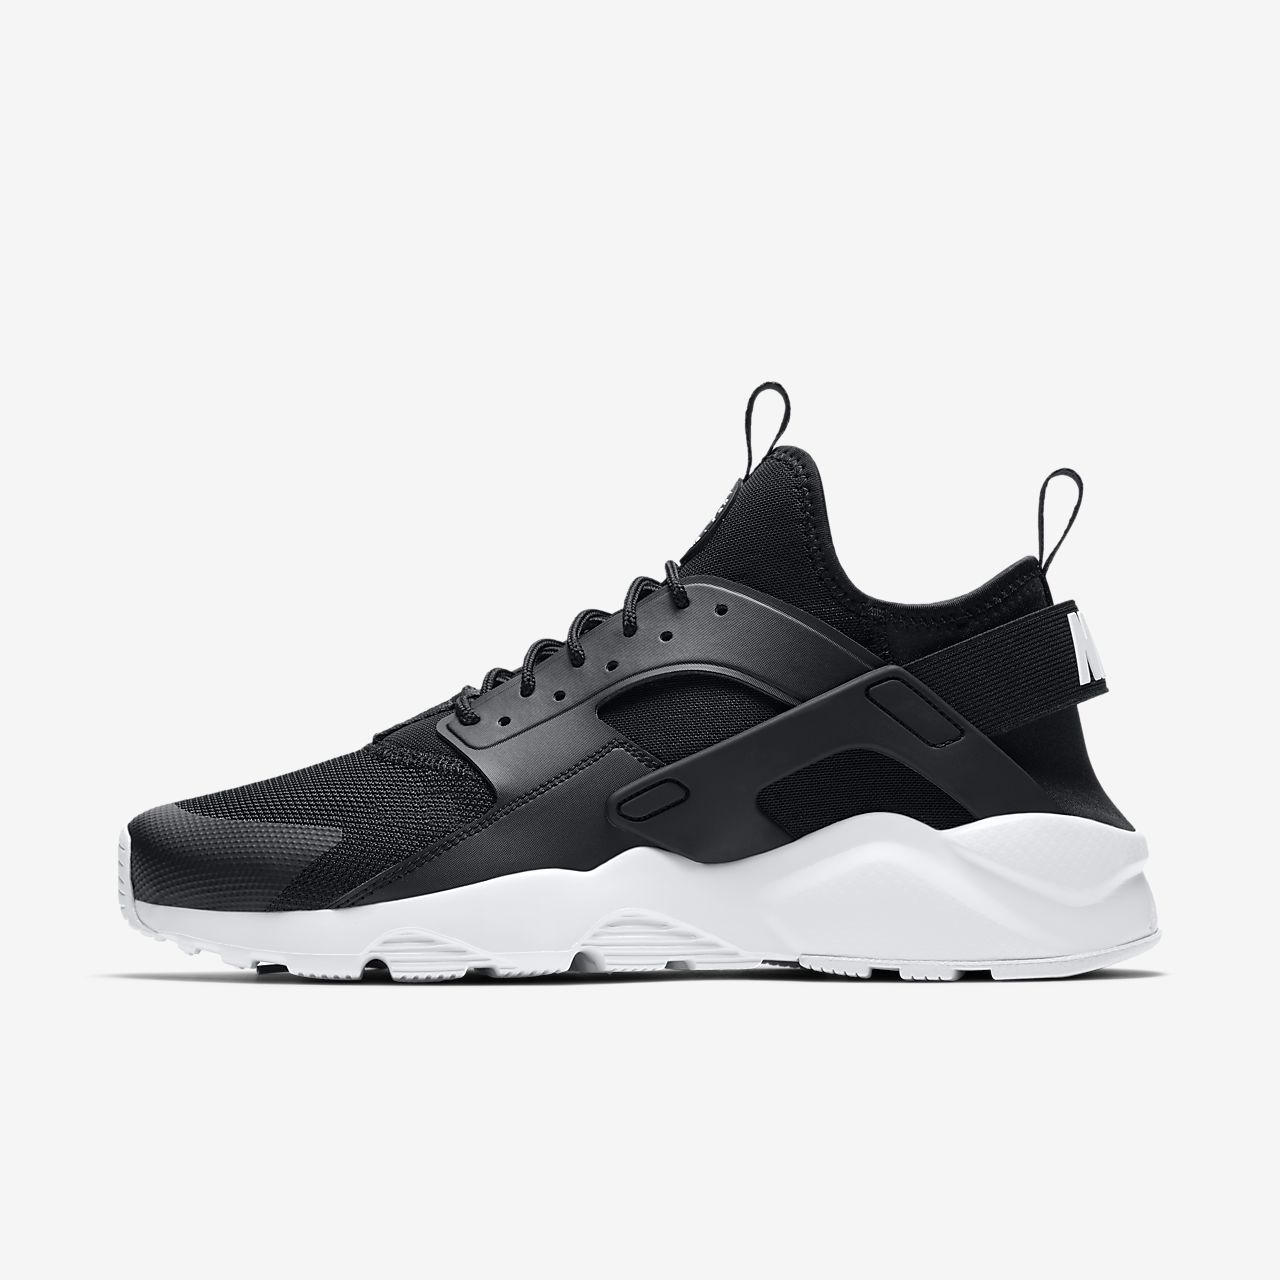 best sneakers 2accf 9687c ... Chaussure Nike Air Huarache Ultra pour Homme